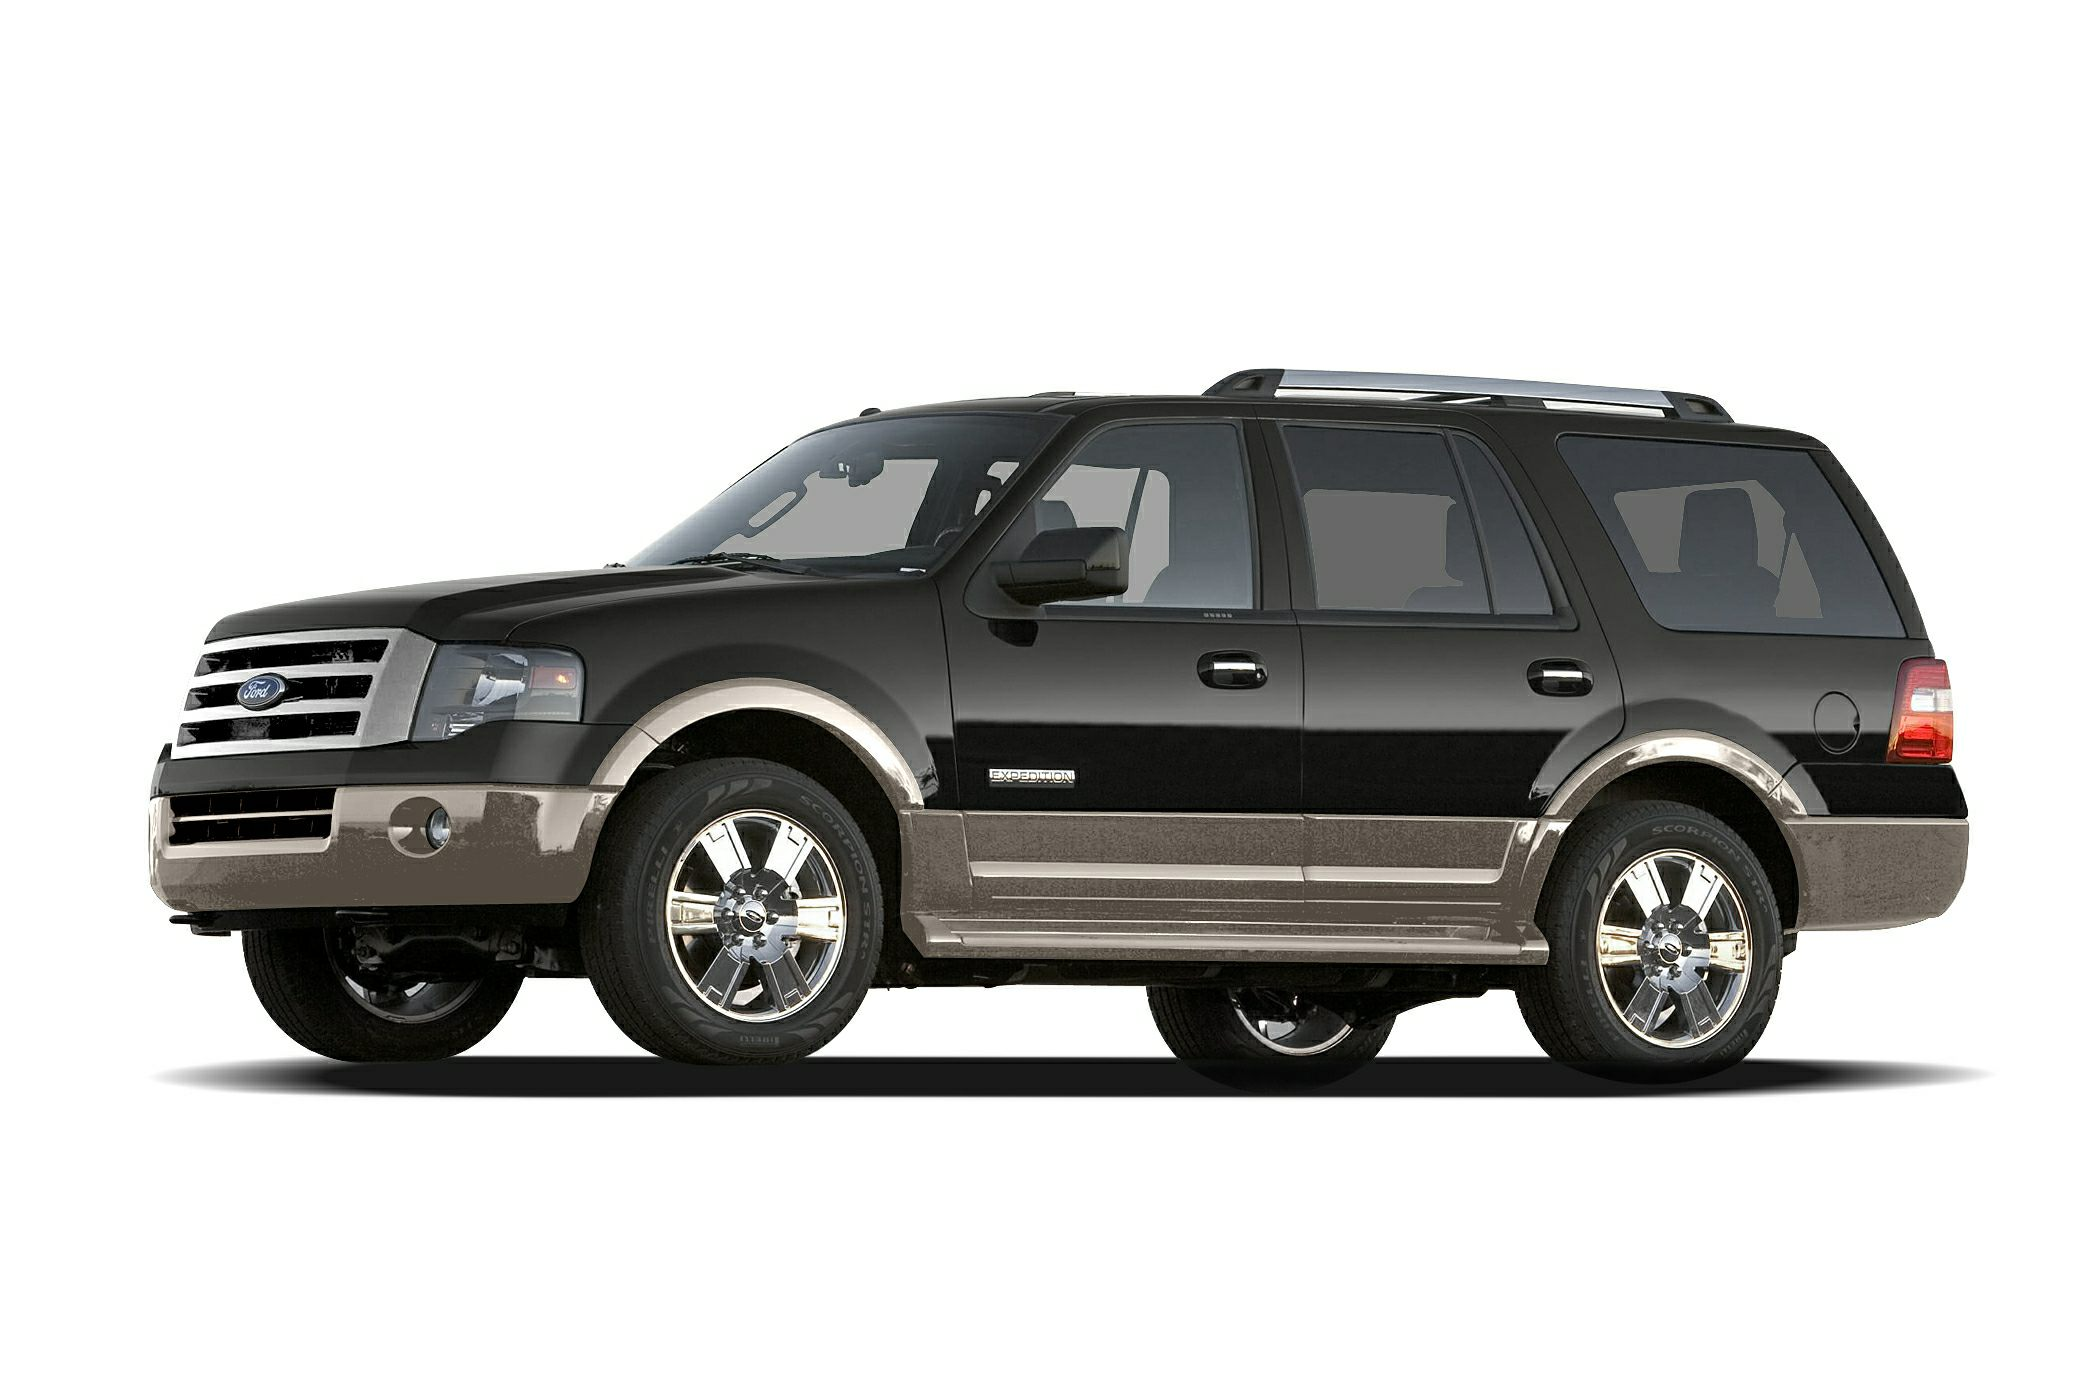 2007 ford expedition eddie bauer 4dr 4x2 specs and prices 2007 ford expedition eddie bauer 4dr 4x2 specs and prices